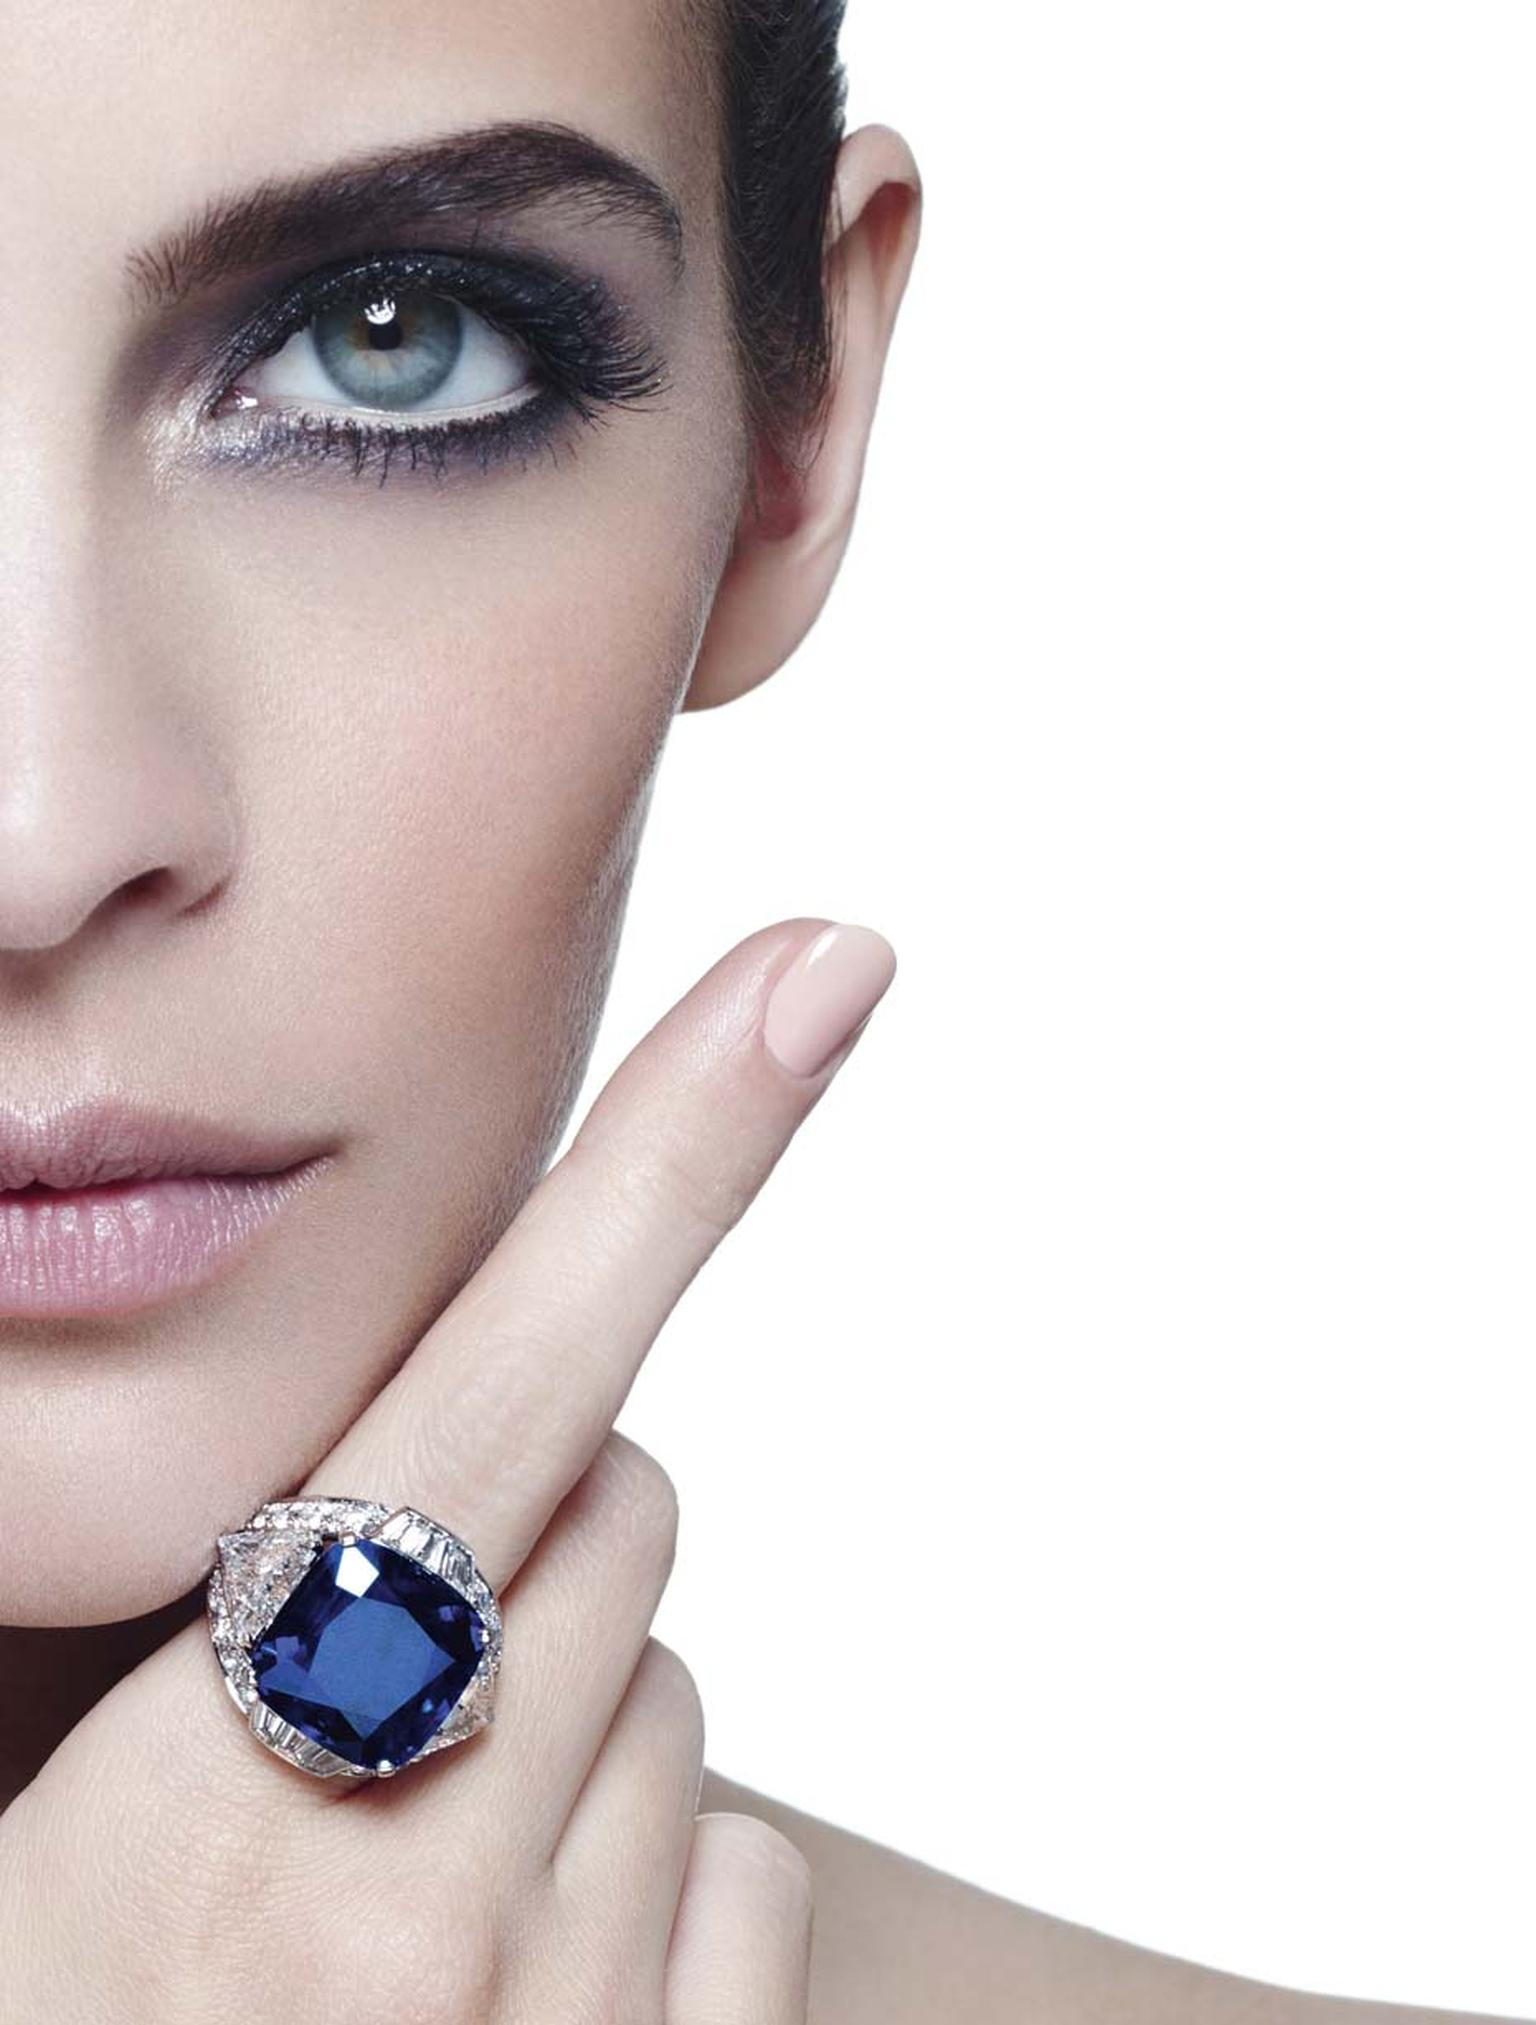 Cartier's Bleu-Bleuet platinum ring was designed around a stunning, cornflower blue 29ct cushion-shaped sapphire from Kashmir.